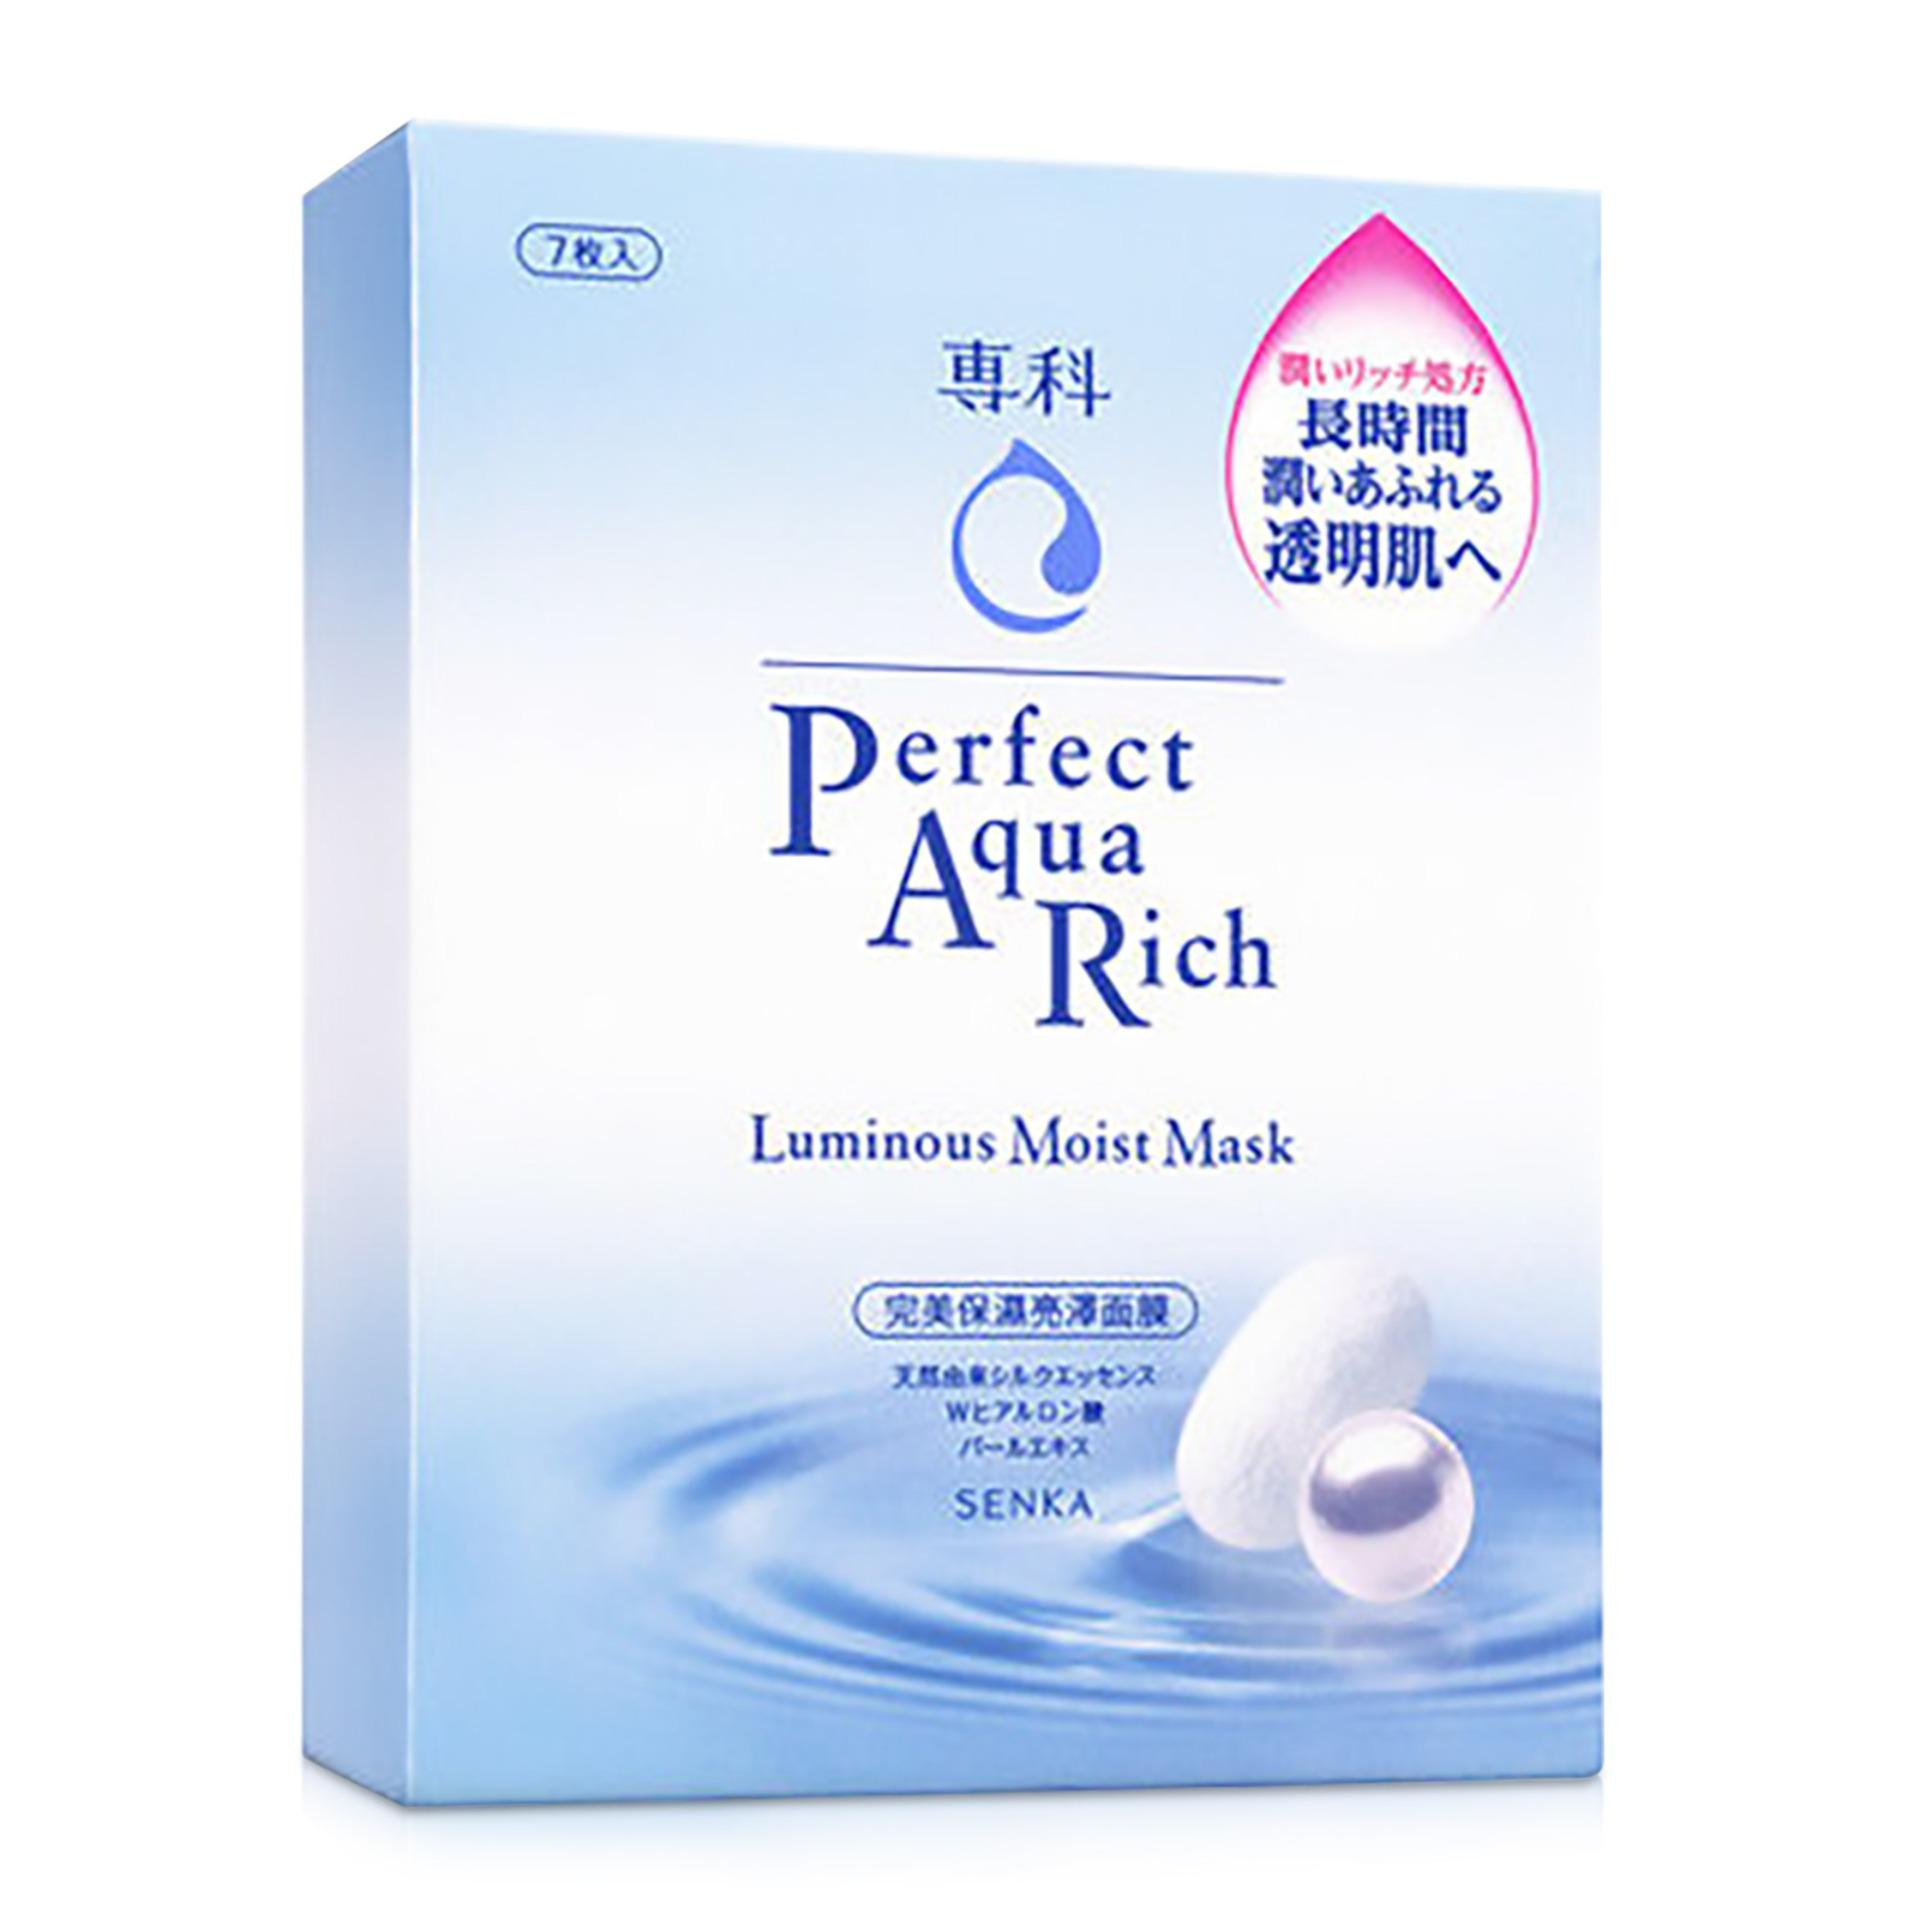 Senka Aqua Rich Mask Luminous Moist 7P Box For Sale